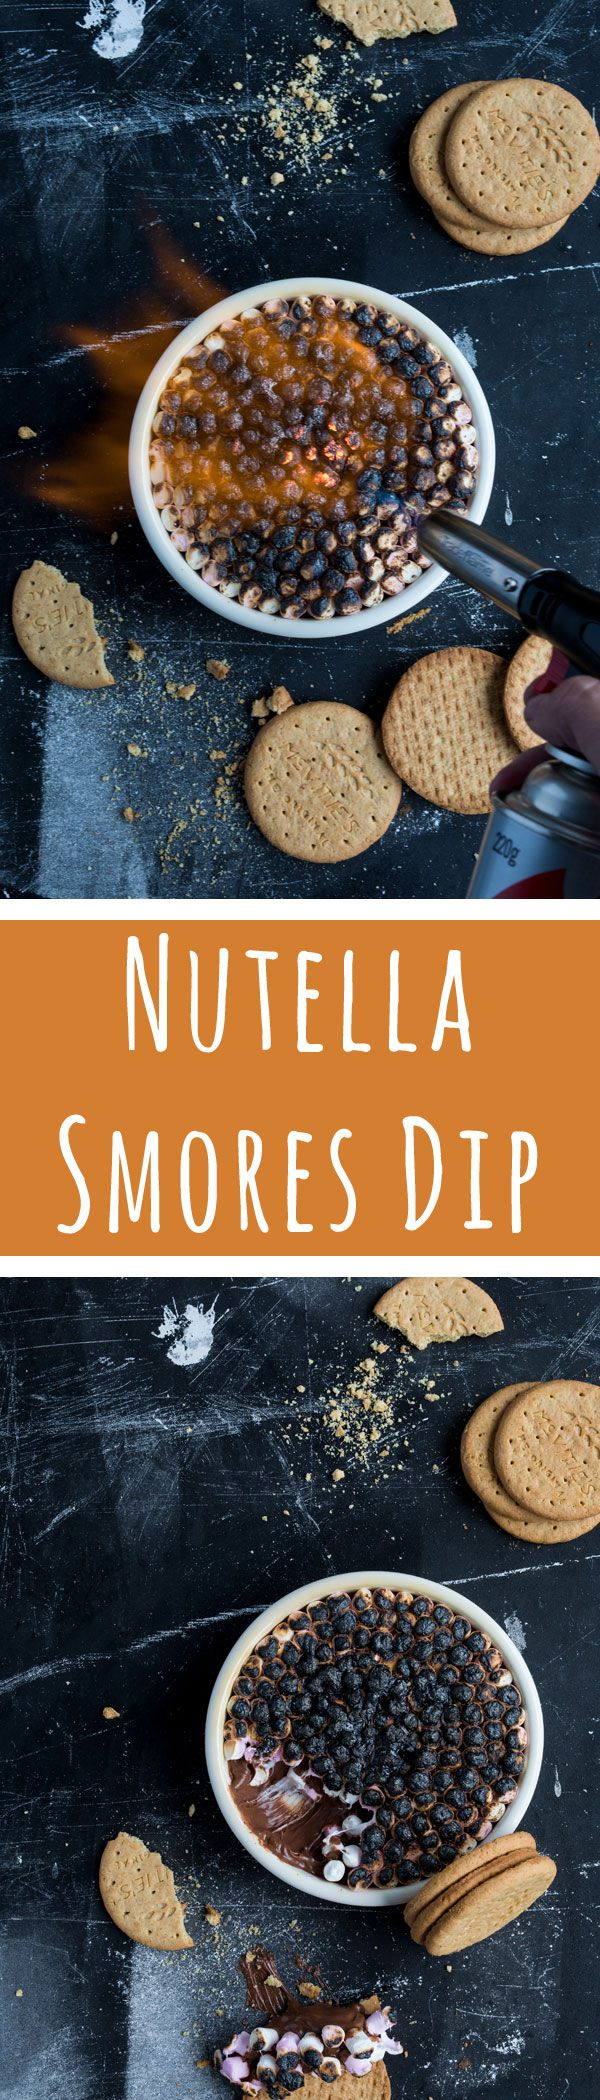 Nutella Smores Dip... 3 ingredients never tasted so good! For the recipe, visit www.dollarsweets.com/recipes